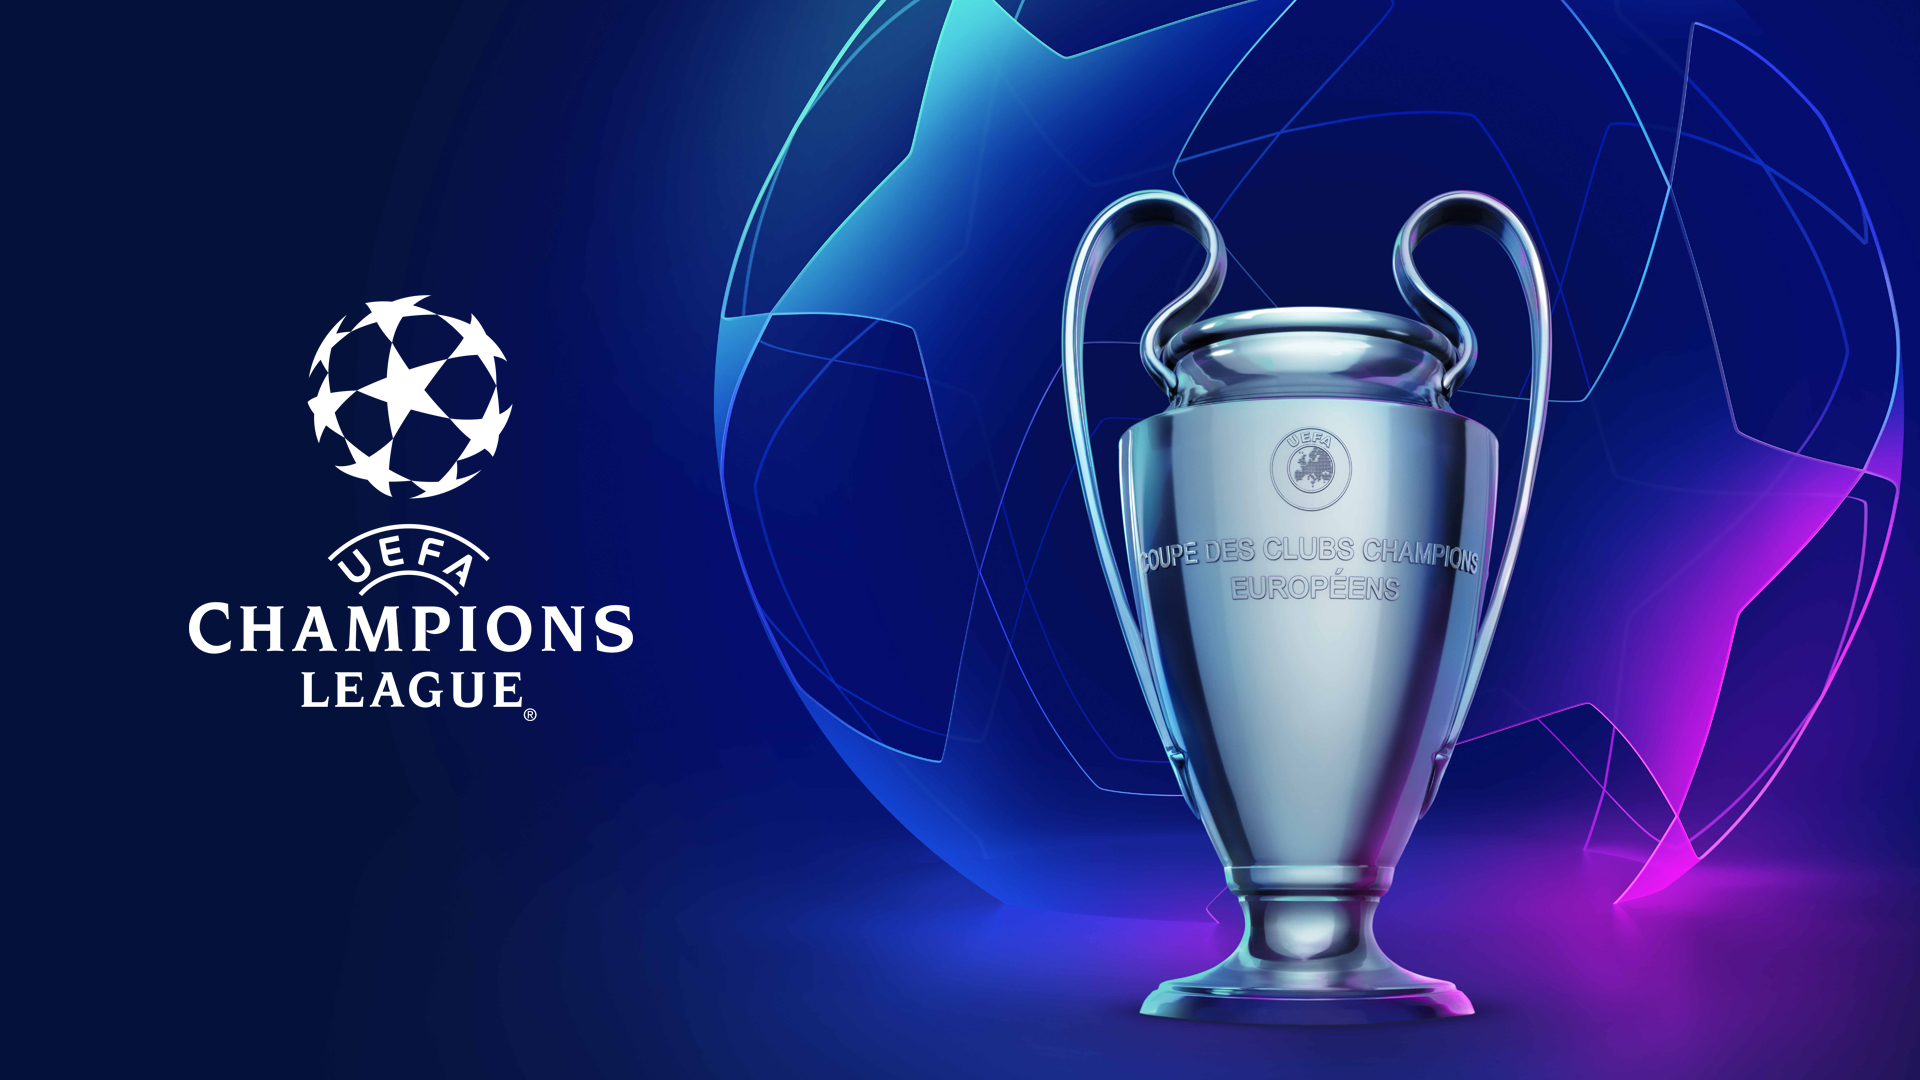 UEFA Champions League – KeyVisual Starball Trophy